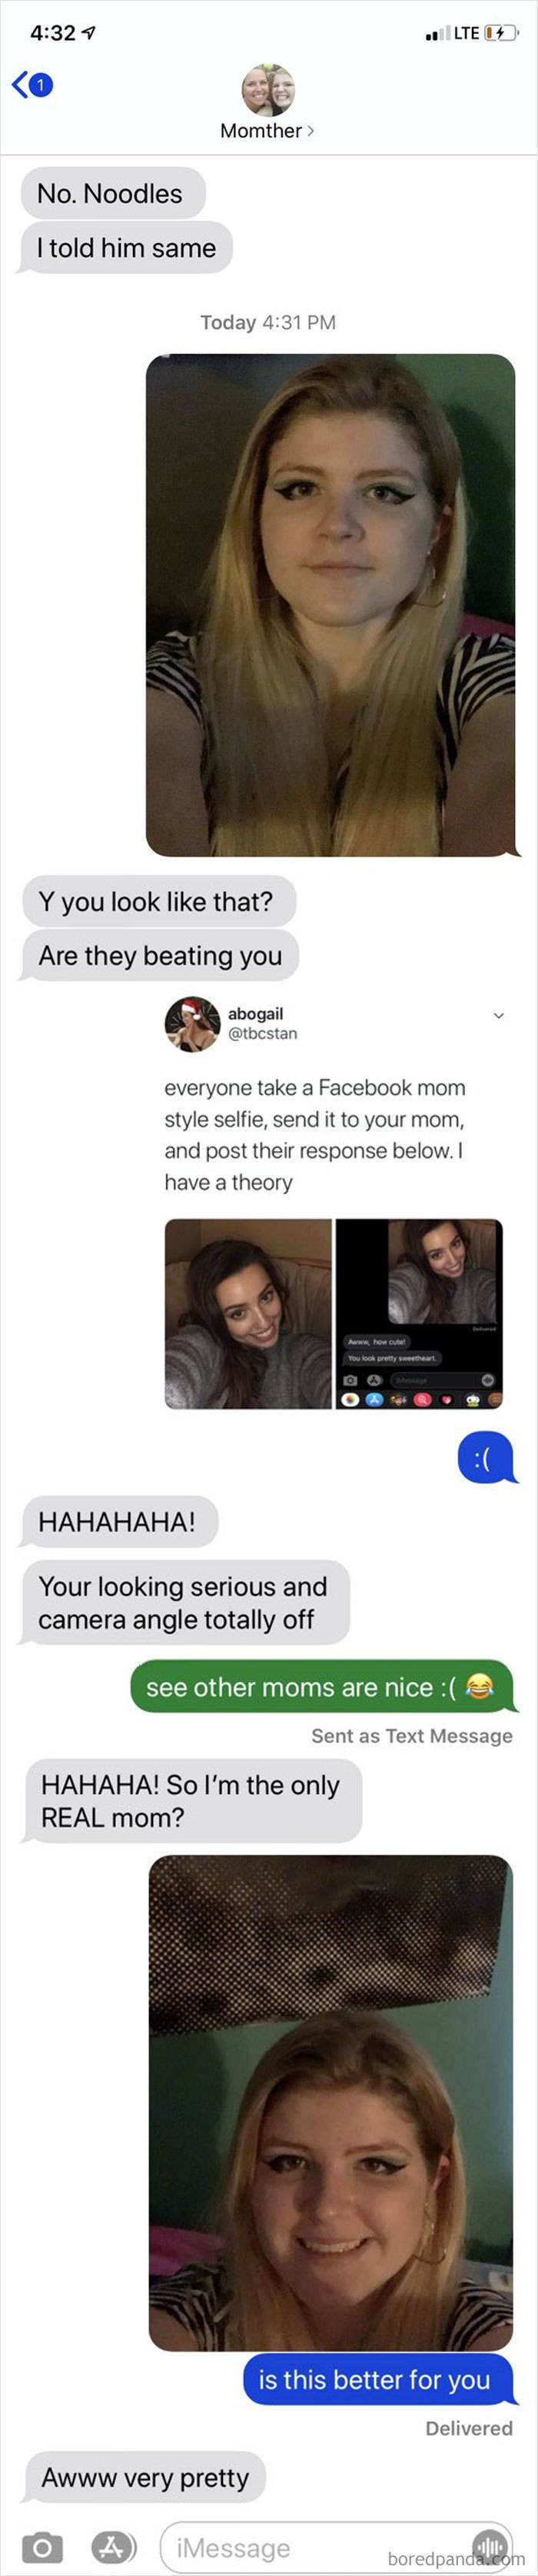 Send Your Selfie To Your Mom Without Context And Wait For Her Response